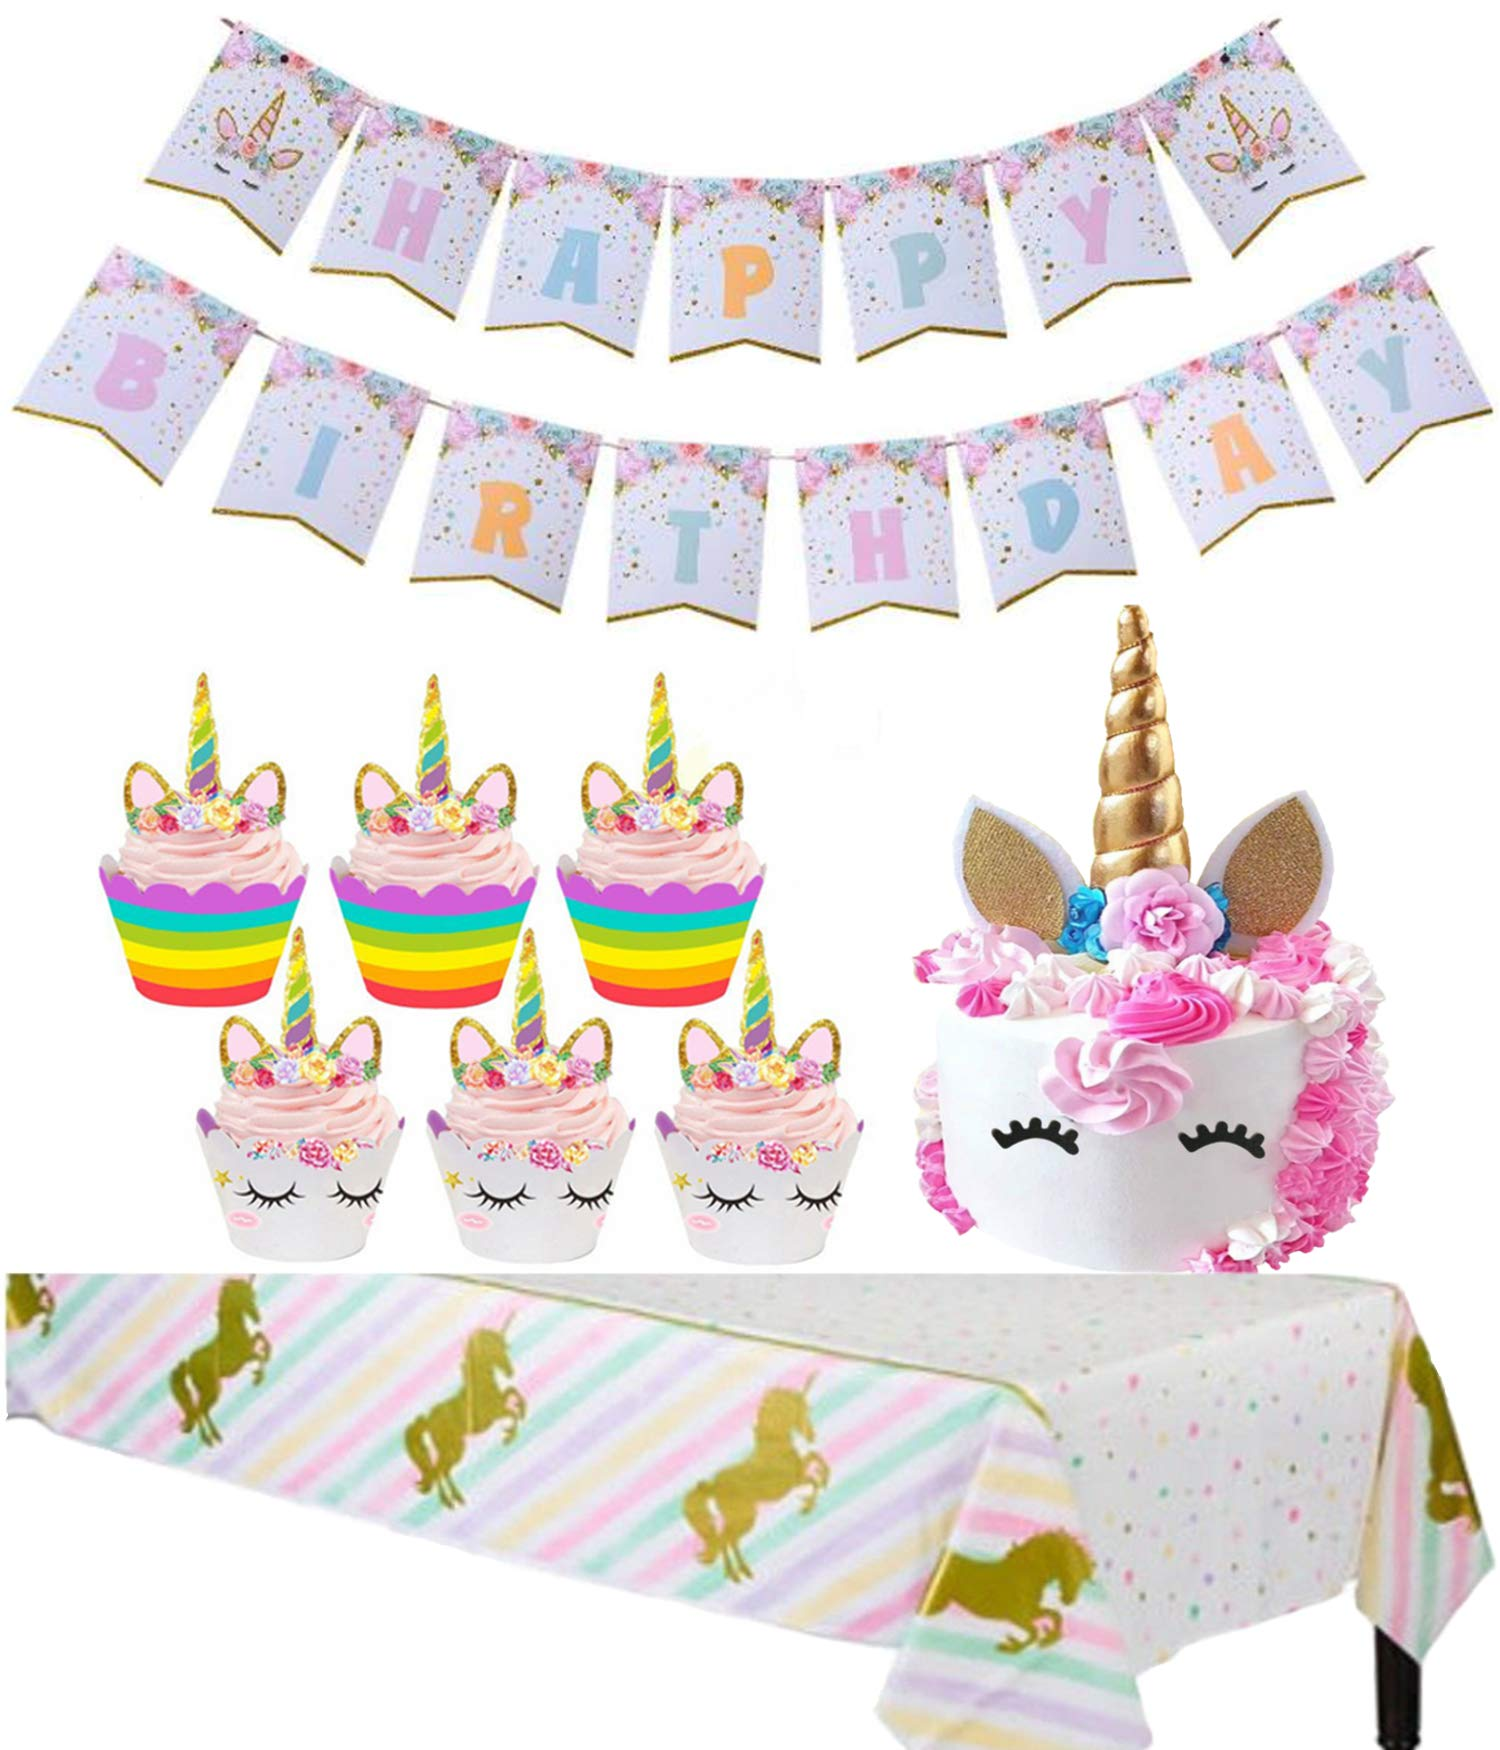 Unicorn Party Supplies Cupcake Toppers Wrappers Kids Party Cake Decorations 24 Packs/Handmade Gold Unicorn Horn Cake Topper with Eyelashes/Happy Birthday Rainbow Bunting Banner/Sparkle Tablecloth